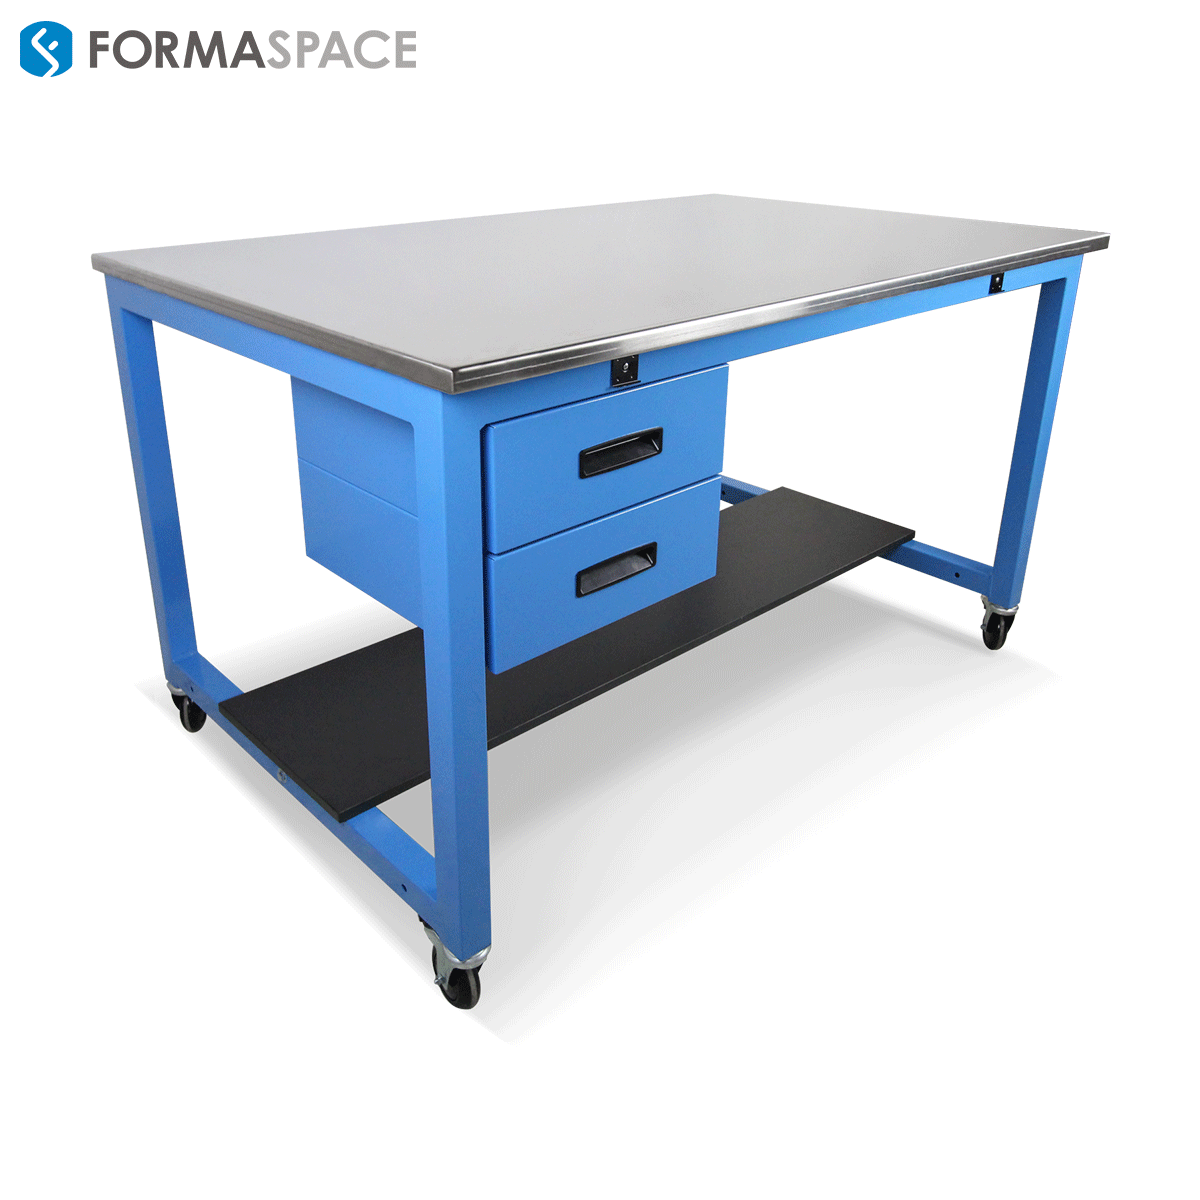 Basix™ with Blue Frame and SS Worksurface